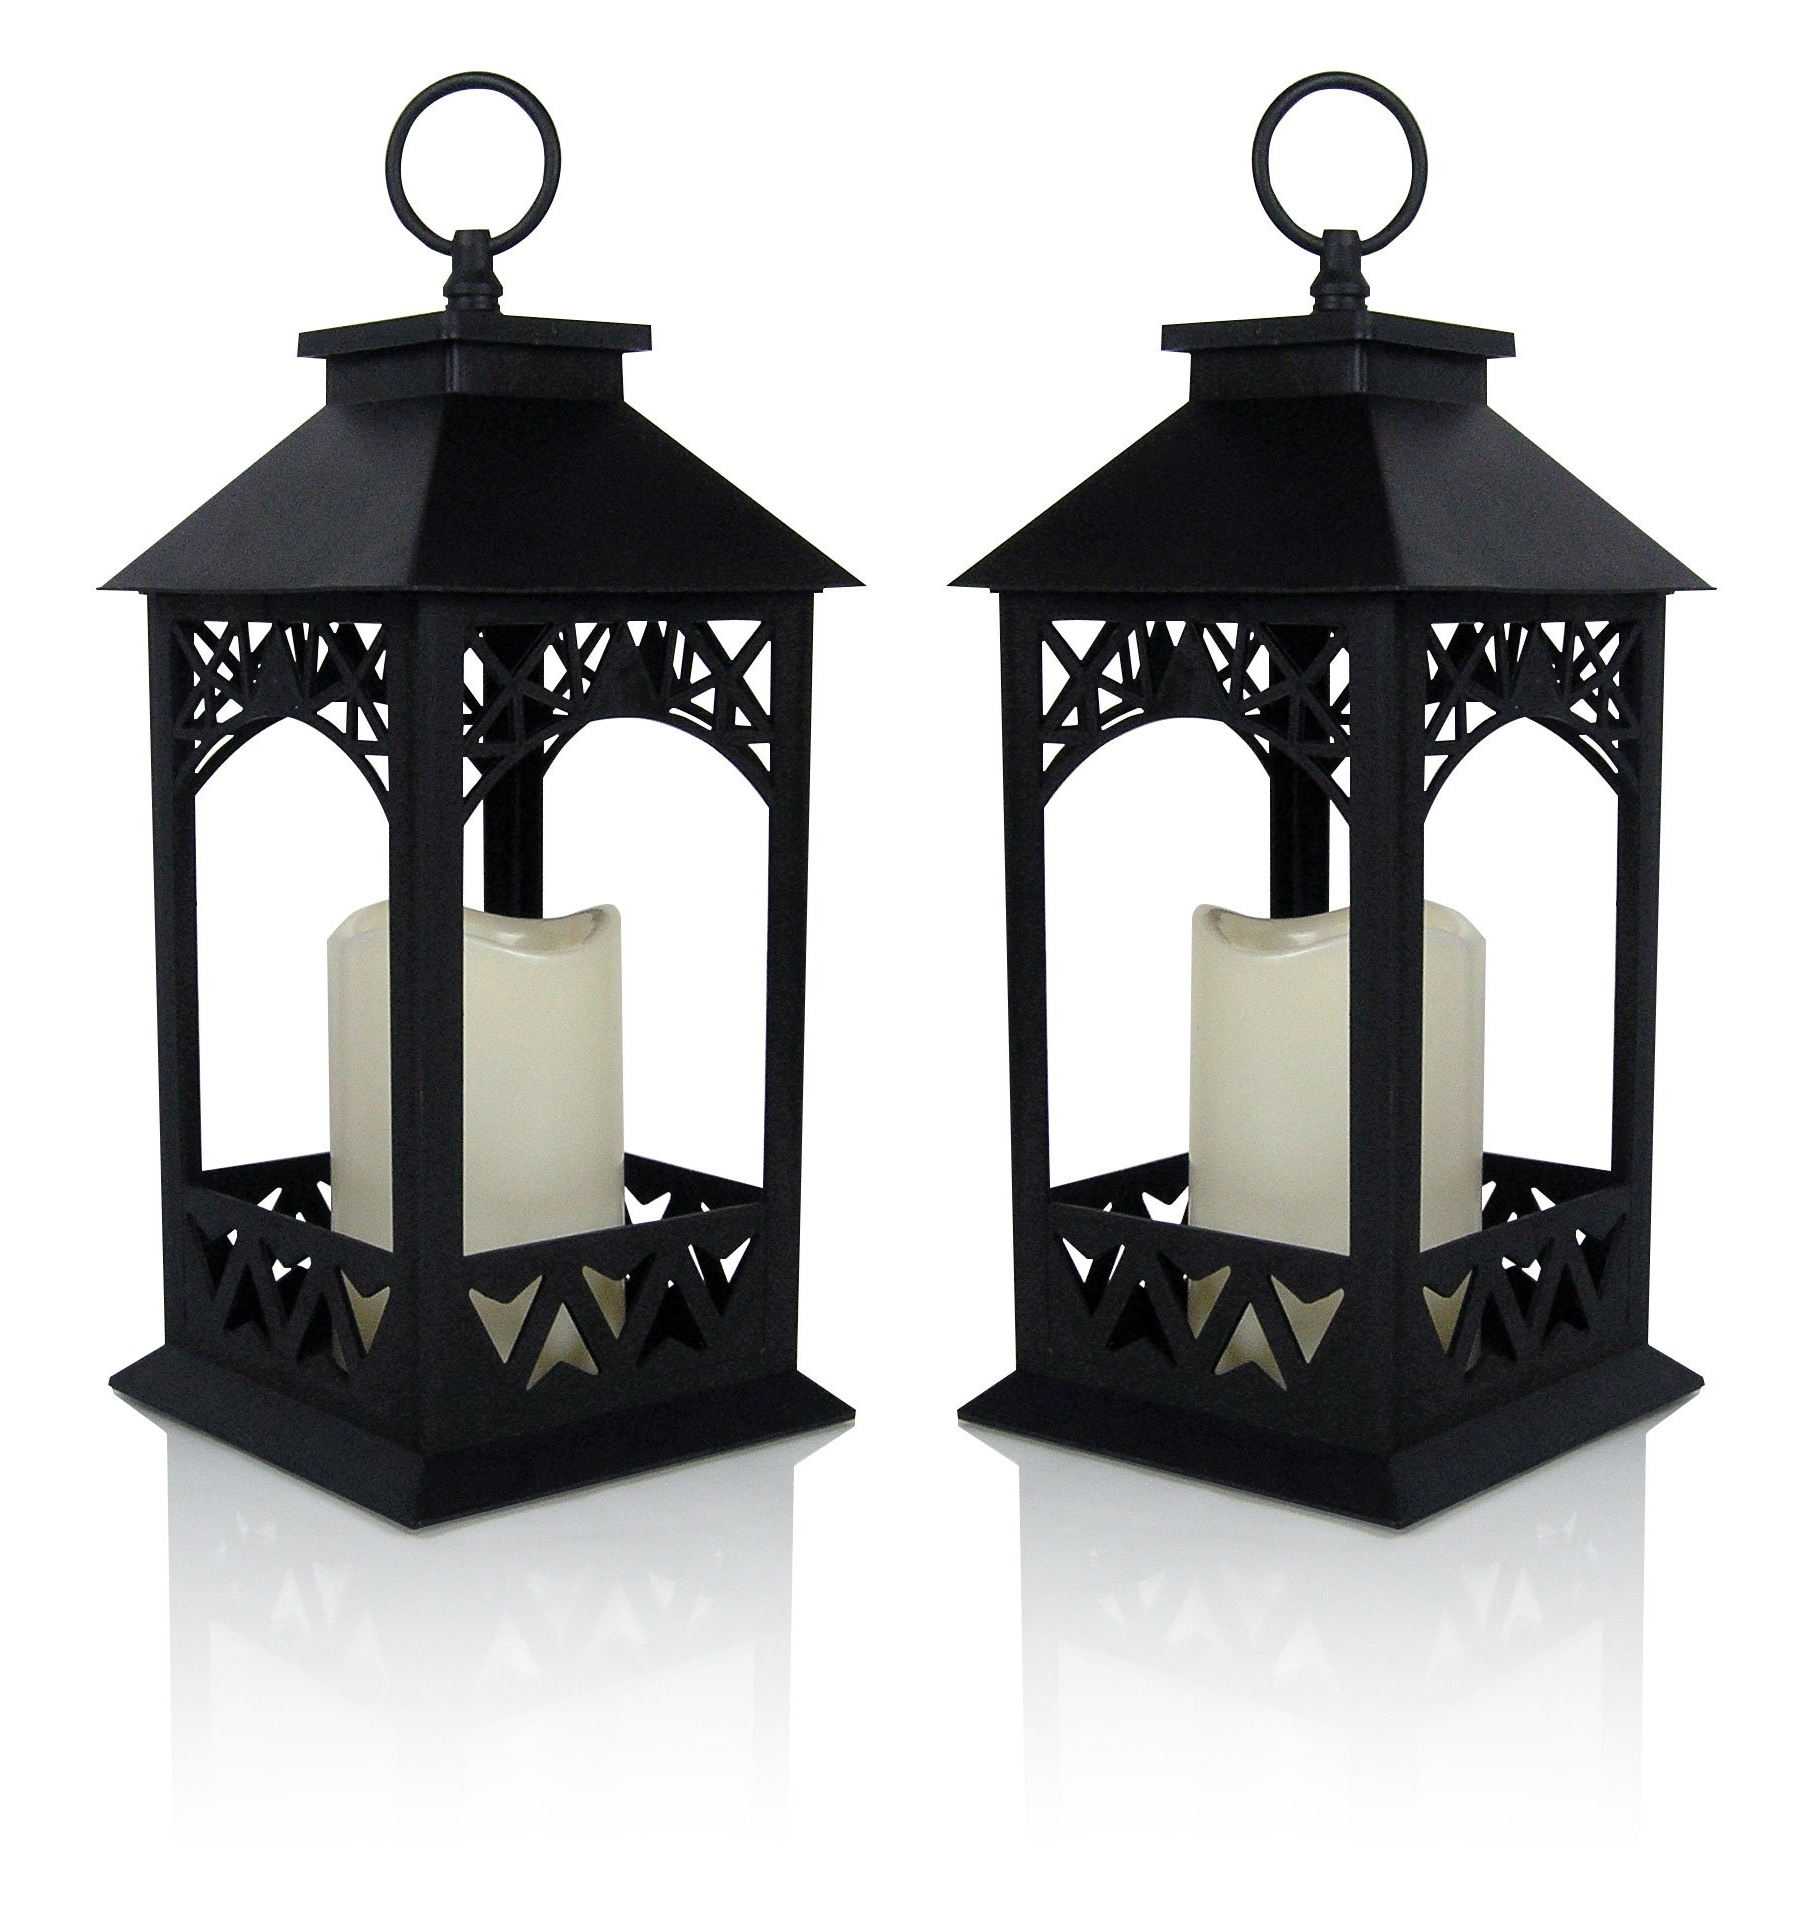 Best And Newest Cheap Outdoor Lanterns Within Cheap Outdoor Lanterns Candle, Find Outdoor Lanterns Candle Deals On (View 4 of 20)